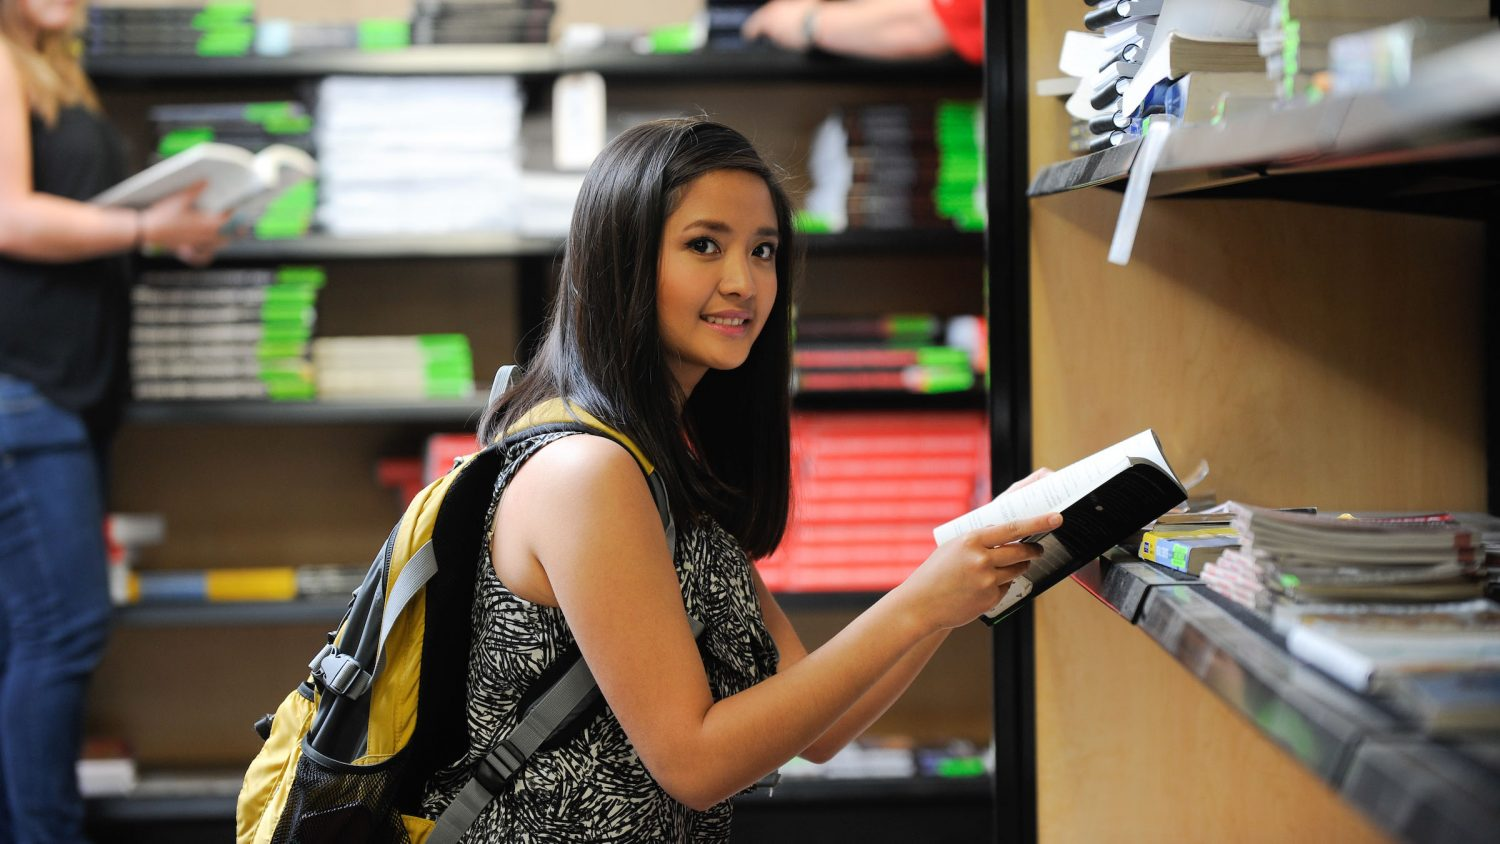 A student looks through books at the book store.